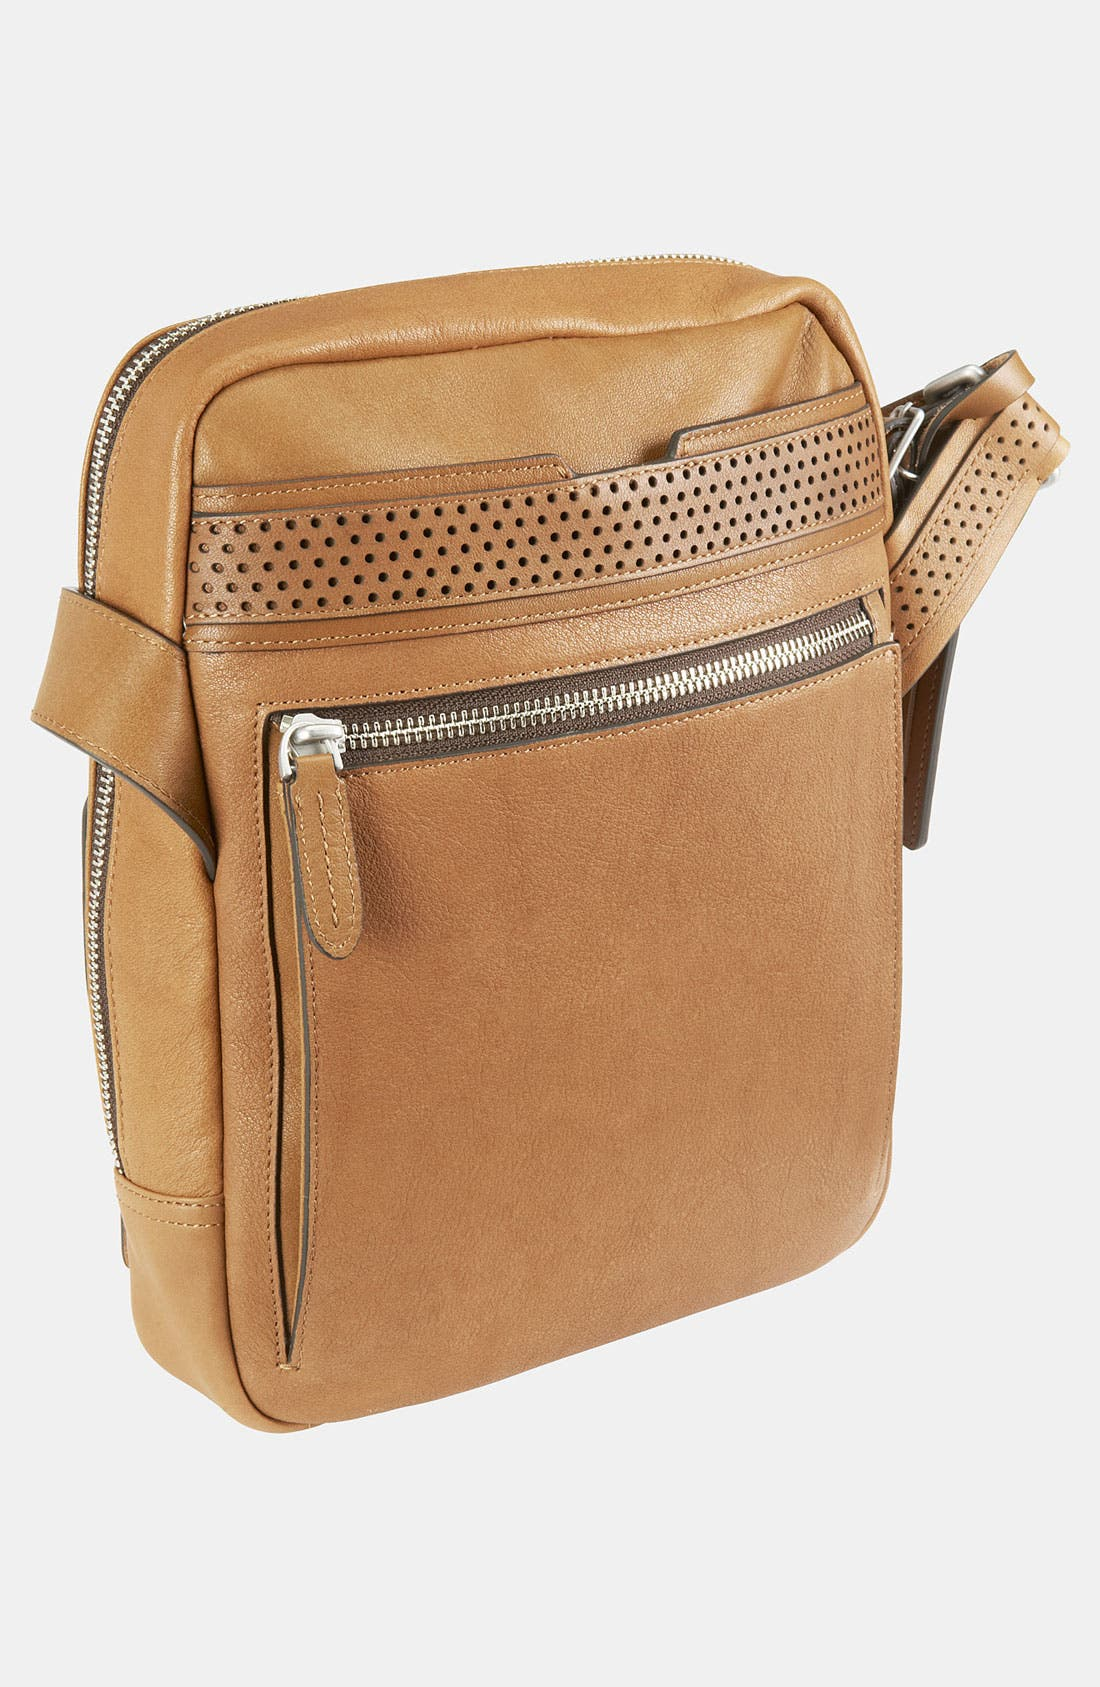 'Ducati Retro - Bronco' Crossbody Bag,                             Alternate thumbnail 3, color,                             219